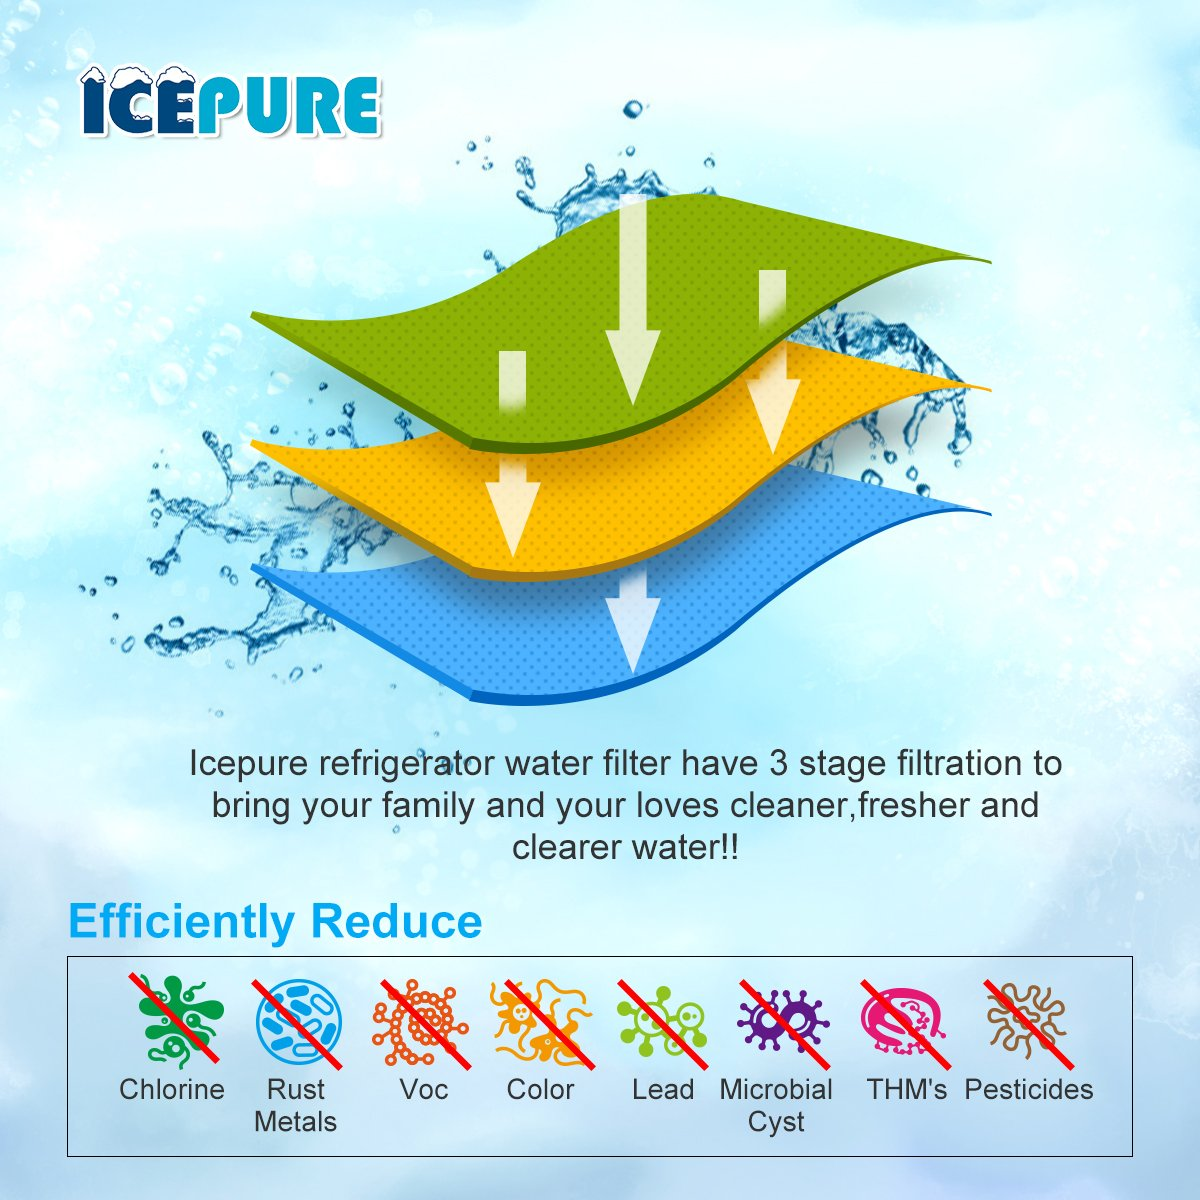 Amazon.com: Icepure 4396508 replacement refrigerator water filter ...